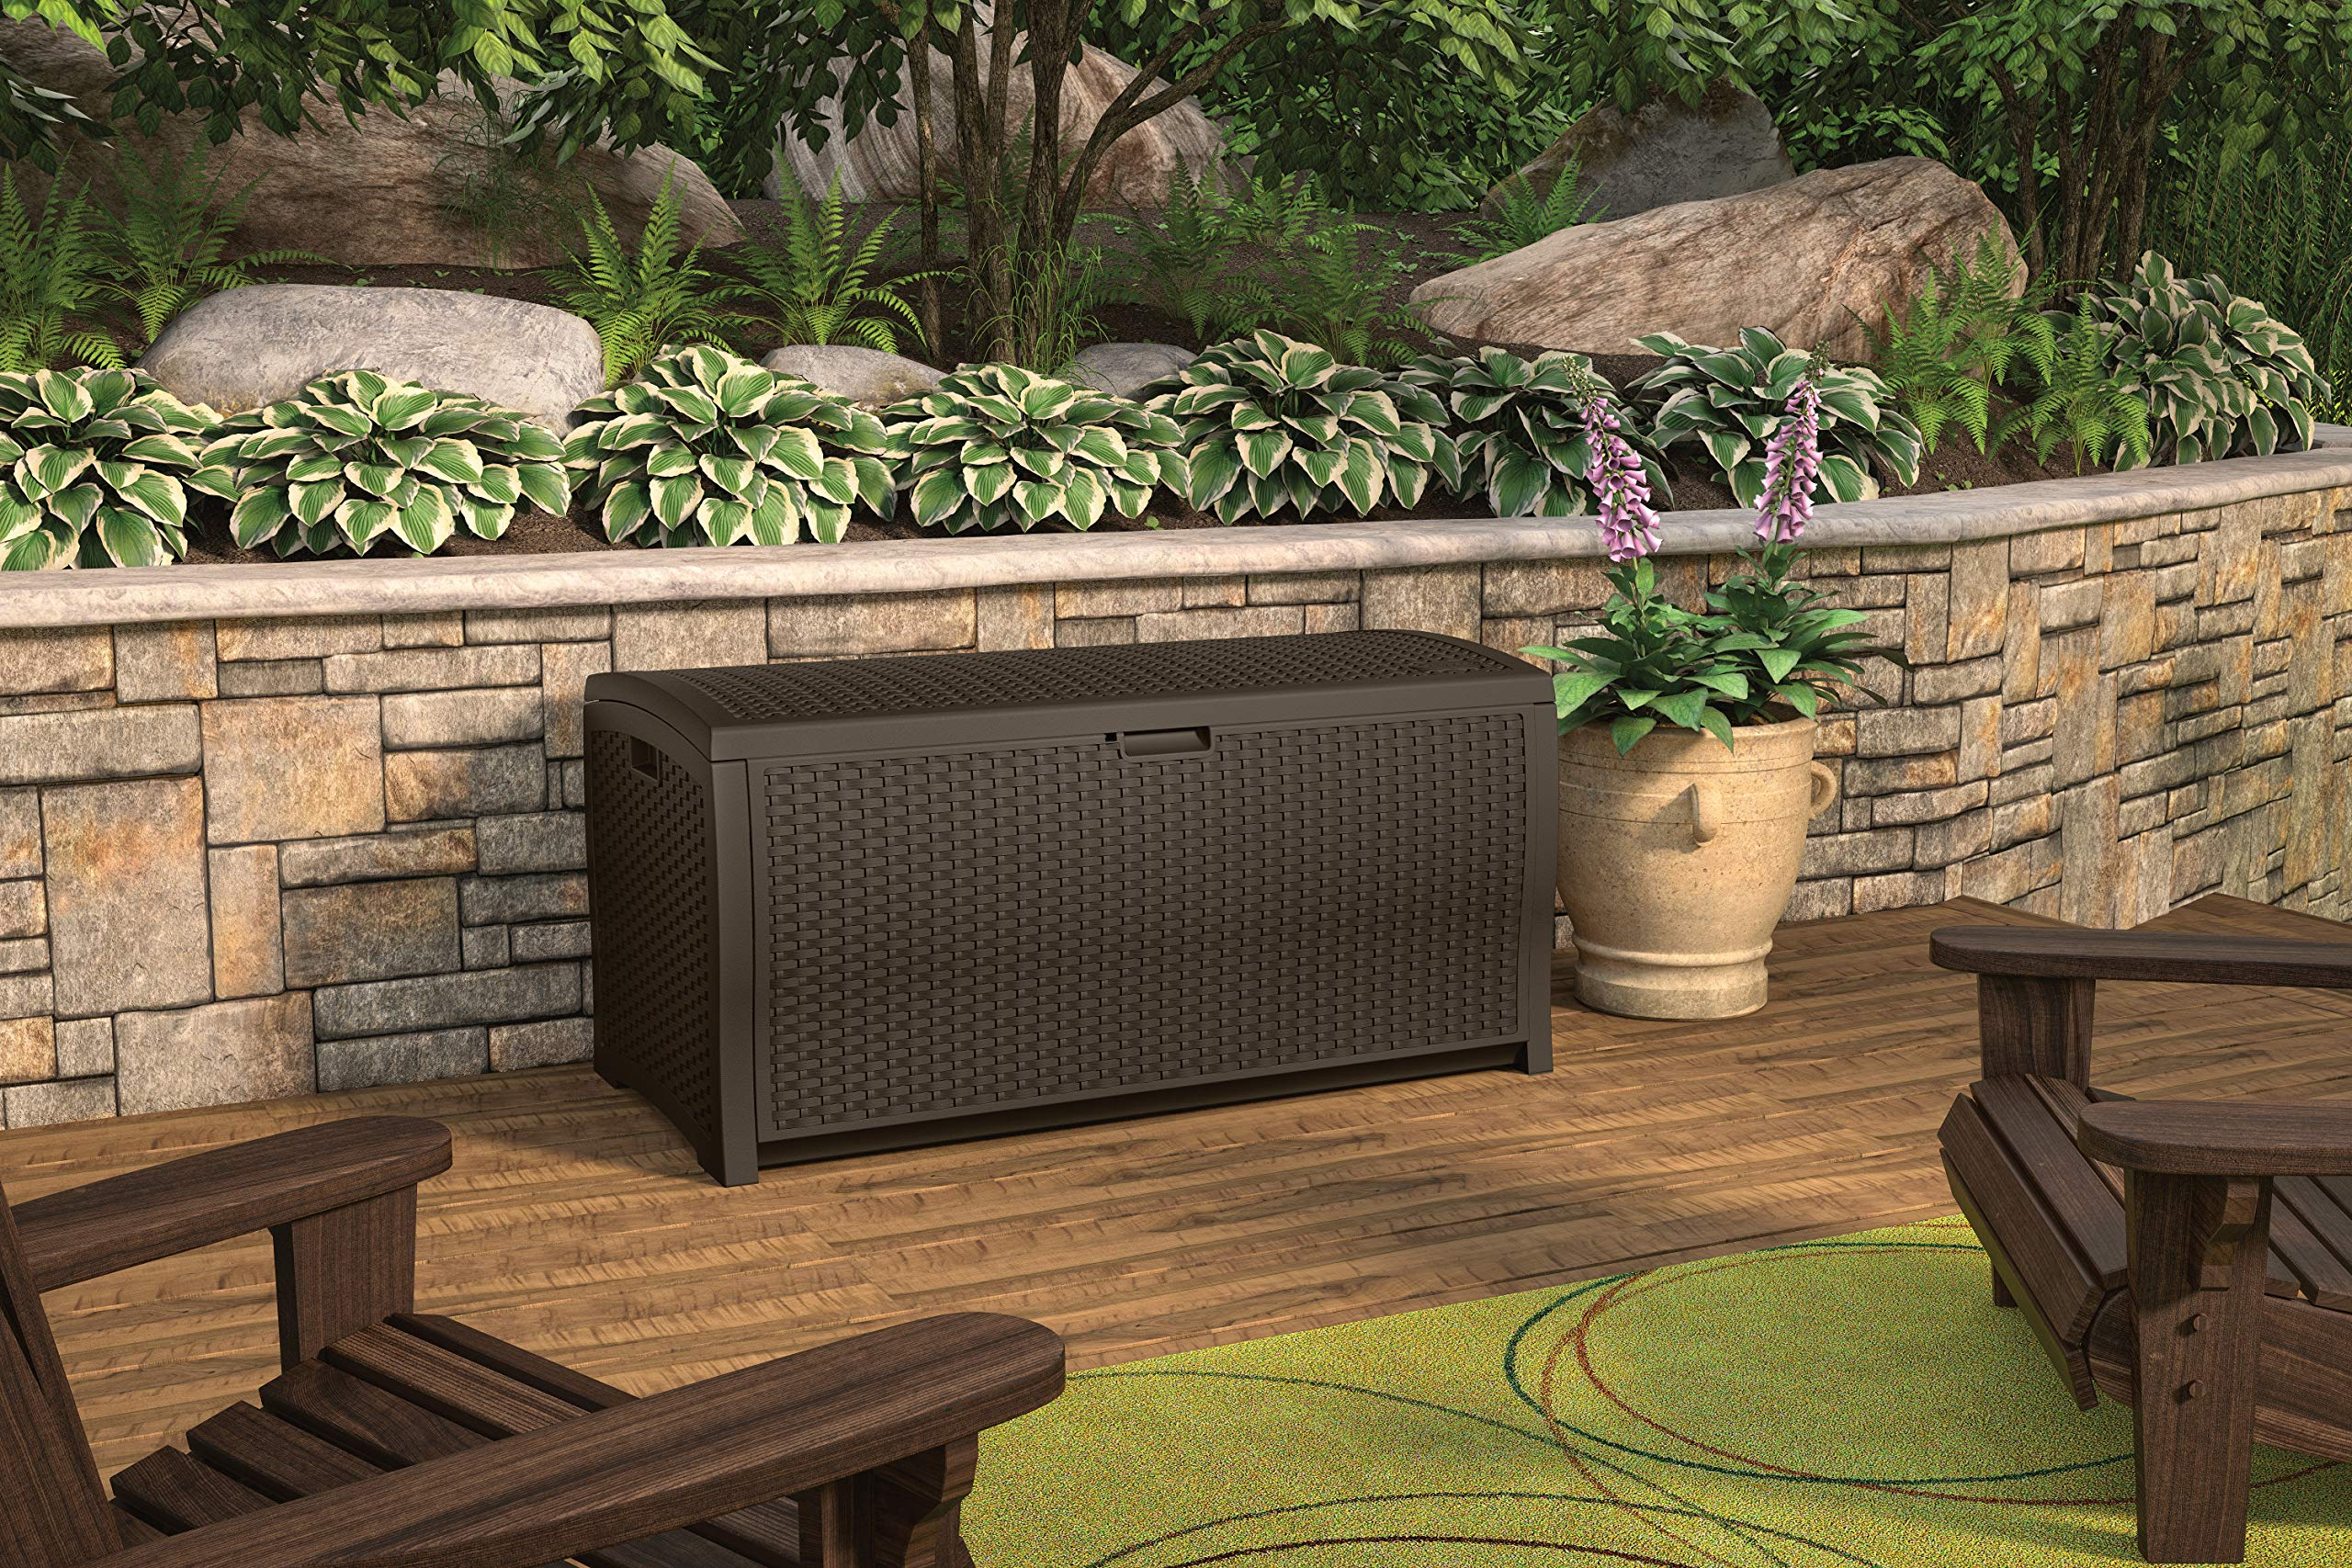 Suncast 99 Gallon Resin Wicker Patio Storage Box - Waterproof Outdoor Storage Container for Toys, Furniture, Yard Tools - Store Items on Deck, Porch, Backyard - Mocha by Suncast (Image #2)